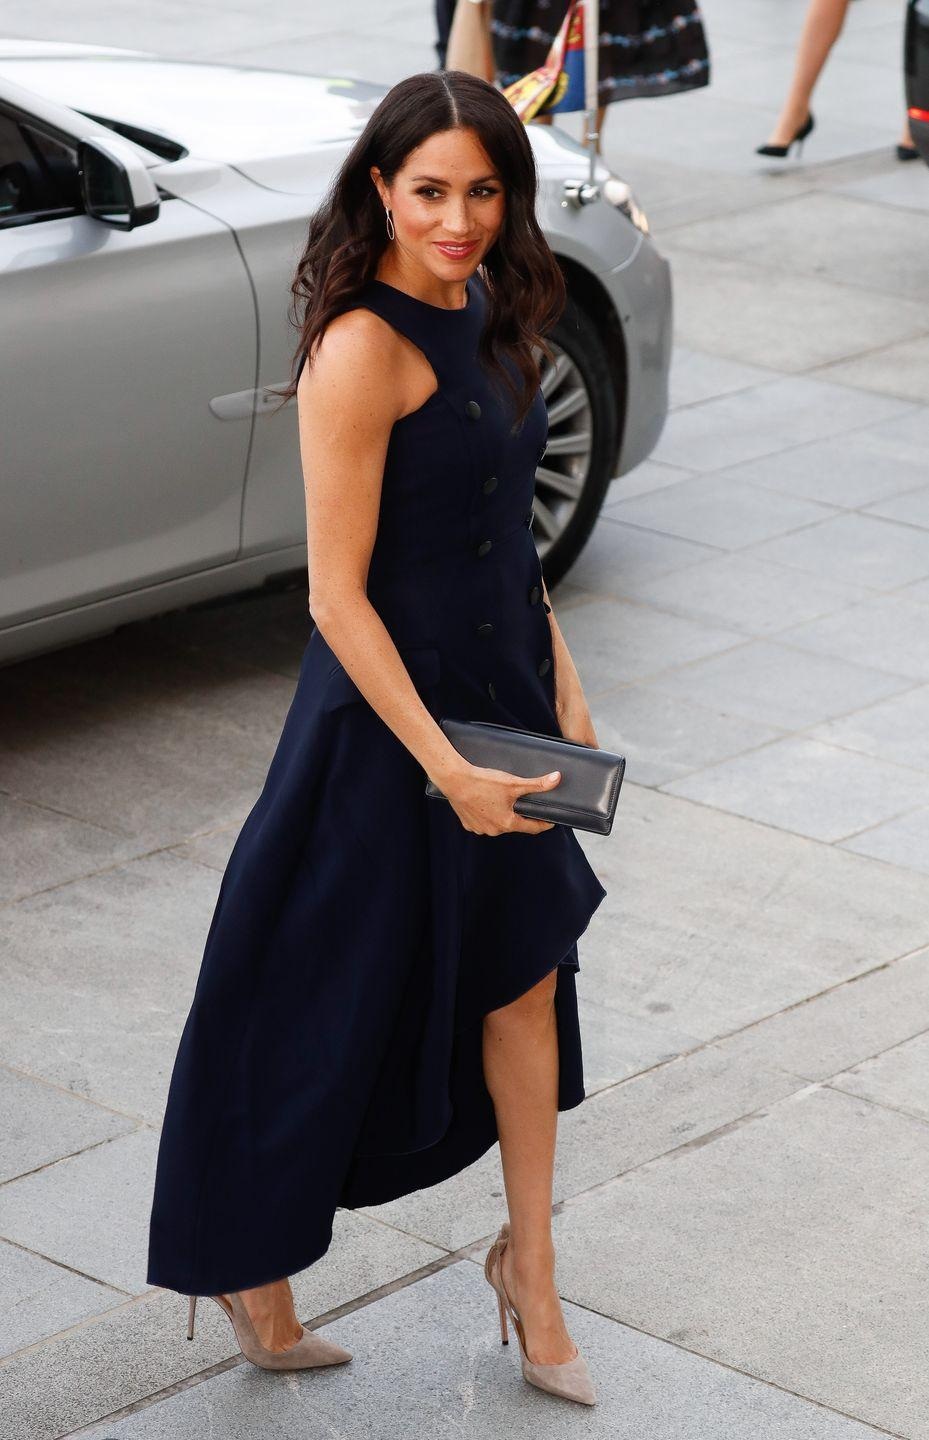 """<p>We all have to wear the same clothes over and over. Why can't the royals? Well, actually, they sometimes do! During the royal tour in New Zealand, Meghan sported a ruffled navy midi dress that has a romantic history for the couple: She wore it on her very first public outing with Prince Harry, <a href=""""https://www.eonline.com/news/981830/meghan-markle-recycles-a-dress-from-her-first-public-outing-with-prince-harry?cmpid=rss-000000-rssfeed-365-fashion"""" rel=""""nofollow noopener"""" target=""""_blank"""" data-ylk=""""slk:E! Online points out"""" class=""""link rapid-noclick-resp"""">E! Online points out</a>. So sweet! </p>"""